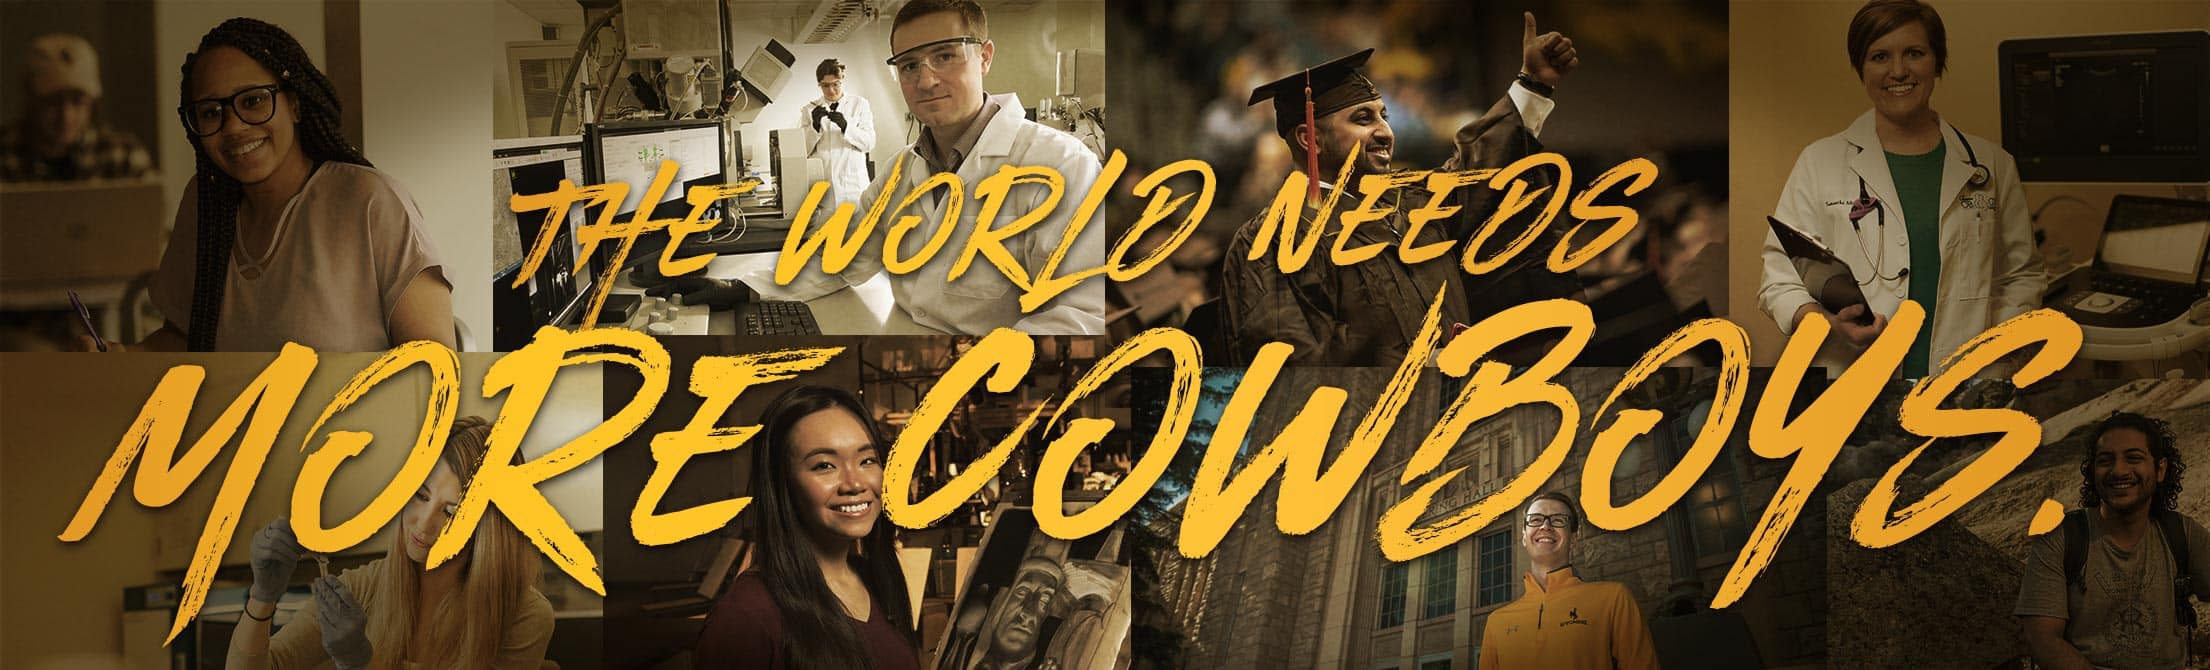 University of Wyoming The World Needs More Cowboys campaign